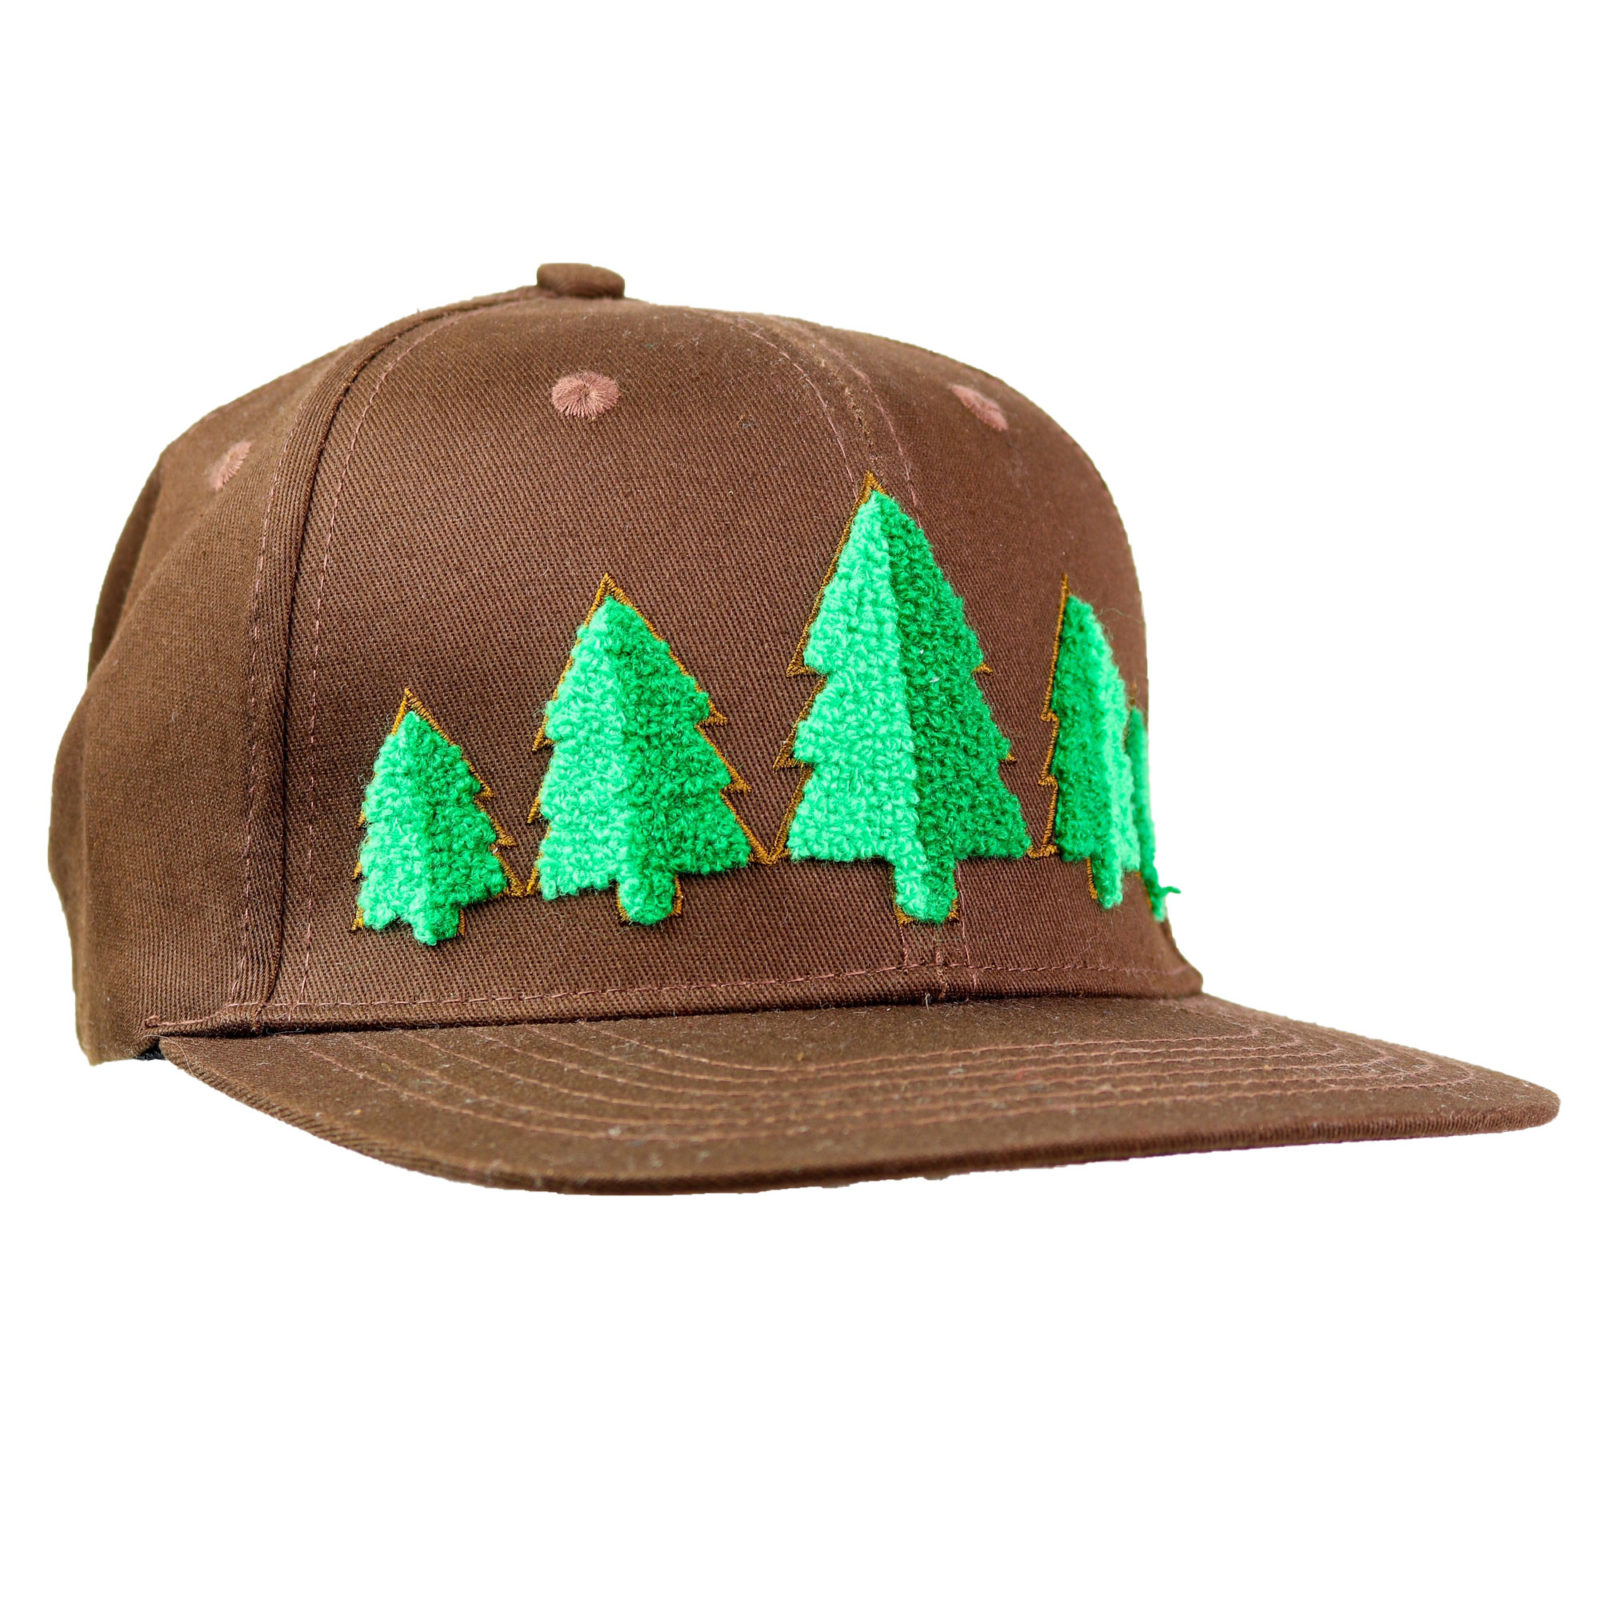 izm-product-hat-trees-brown